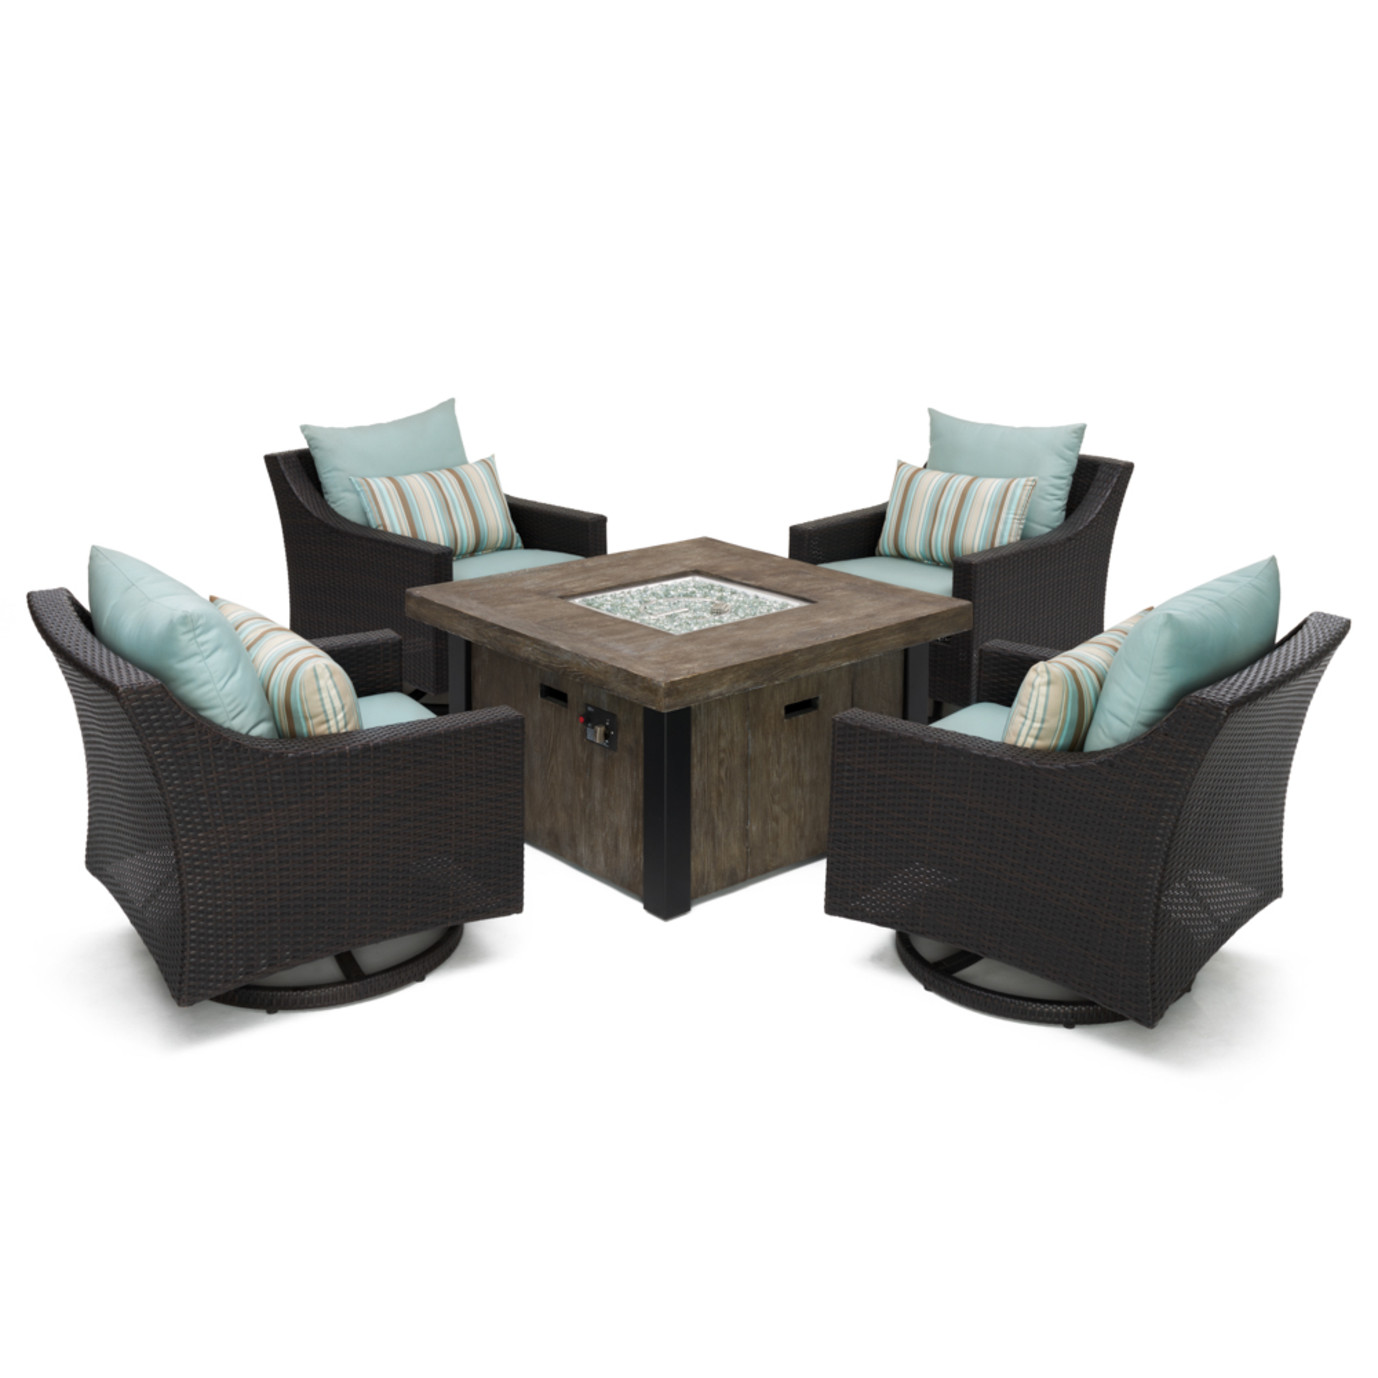 Deco™ 5pc Motion Fire Chat Set - Bliss Blue